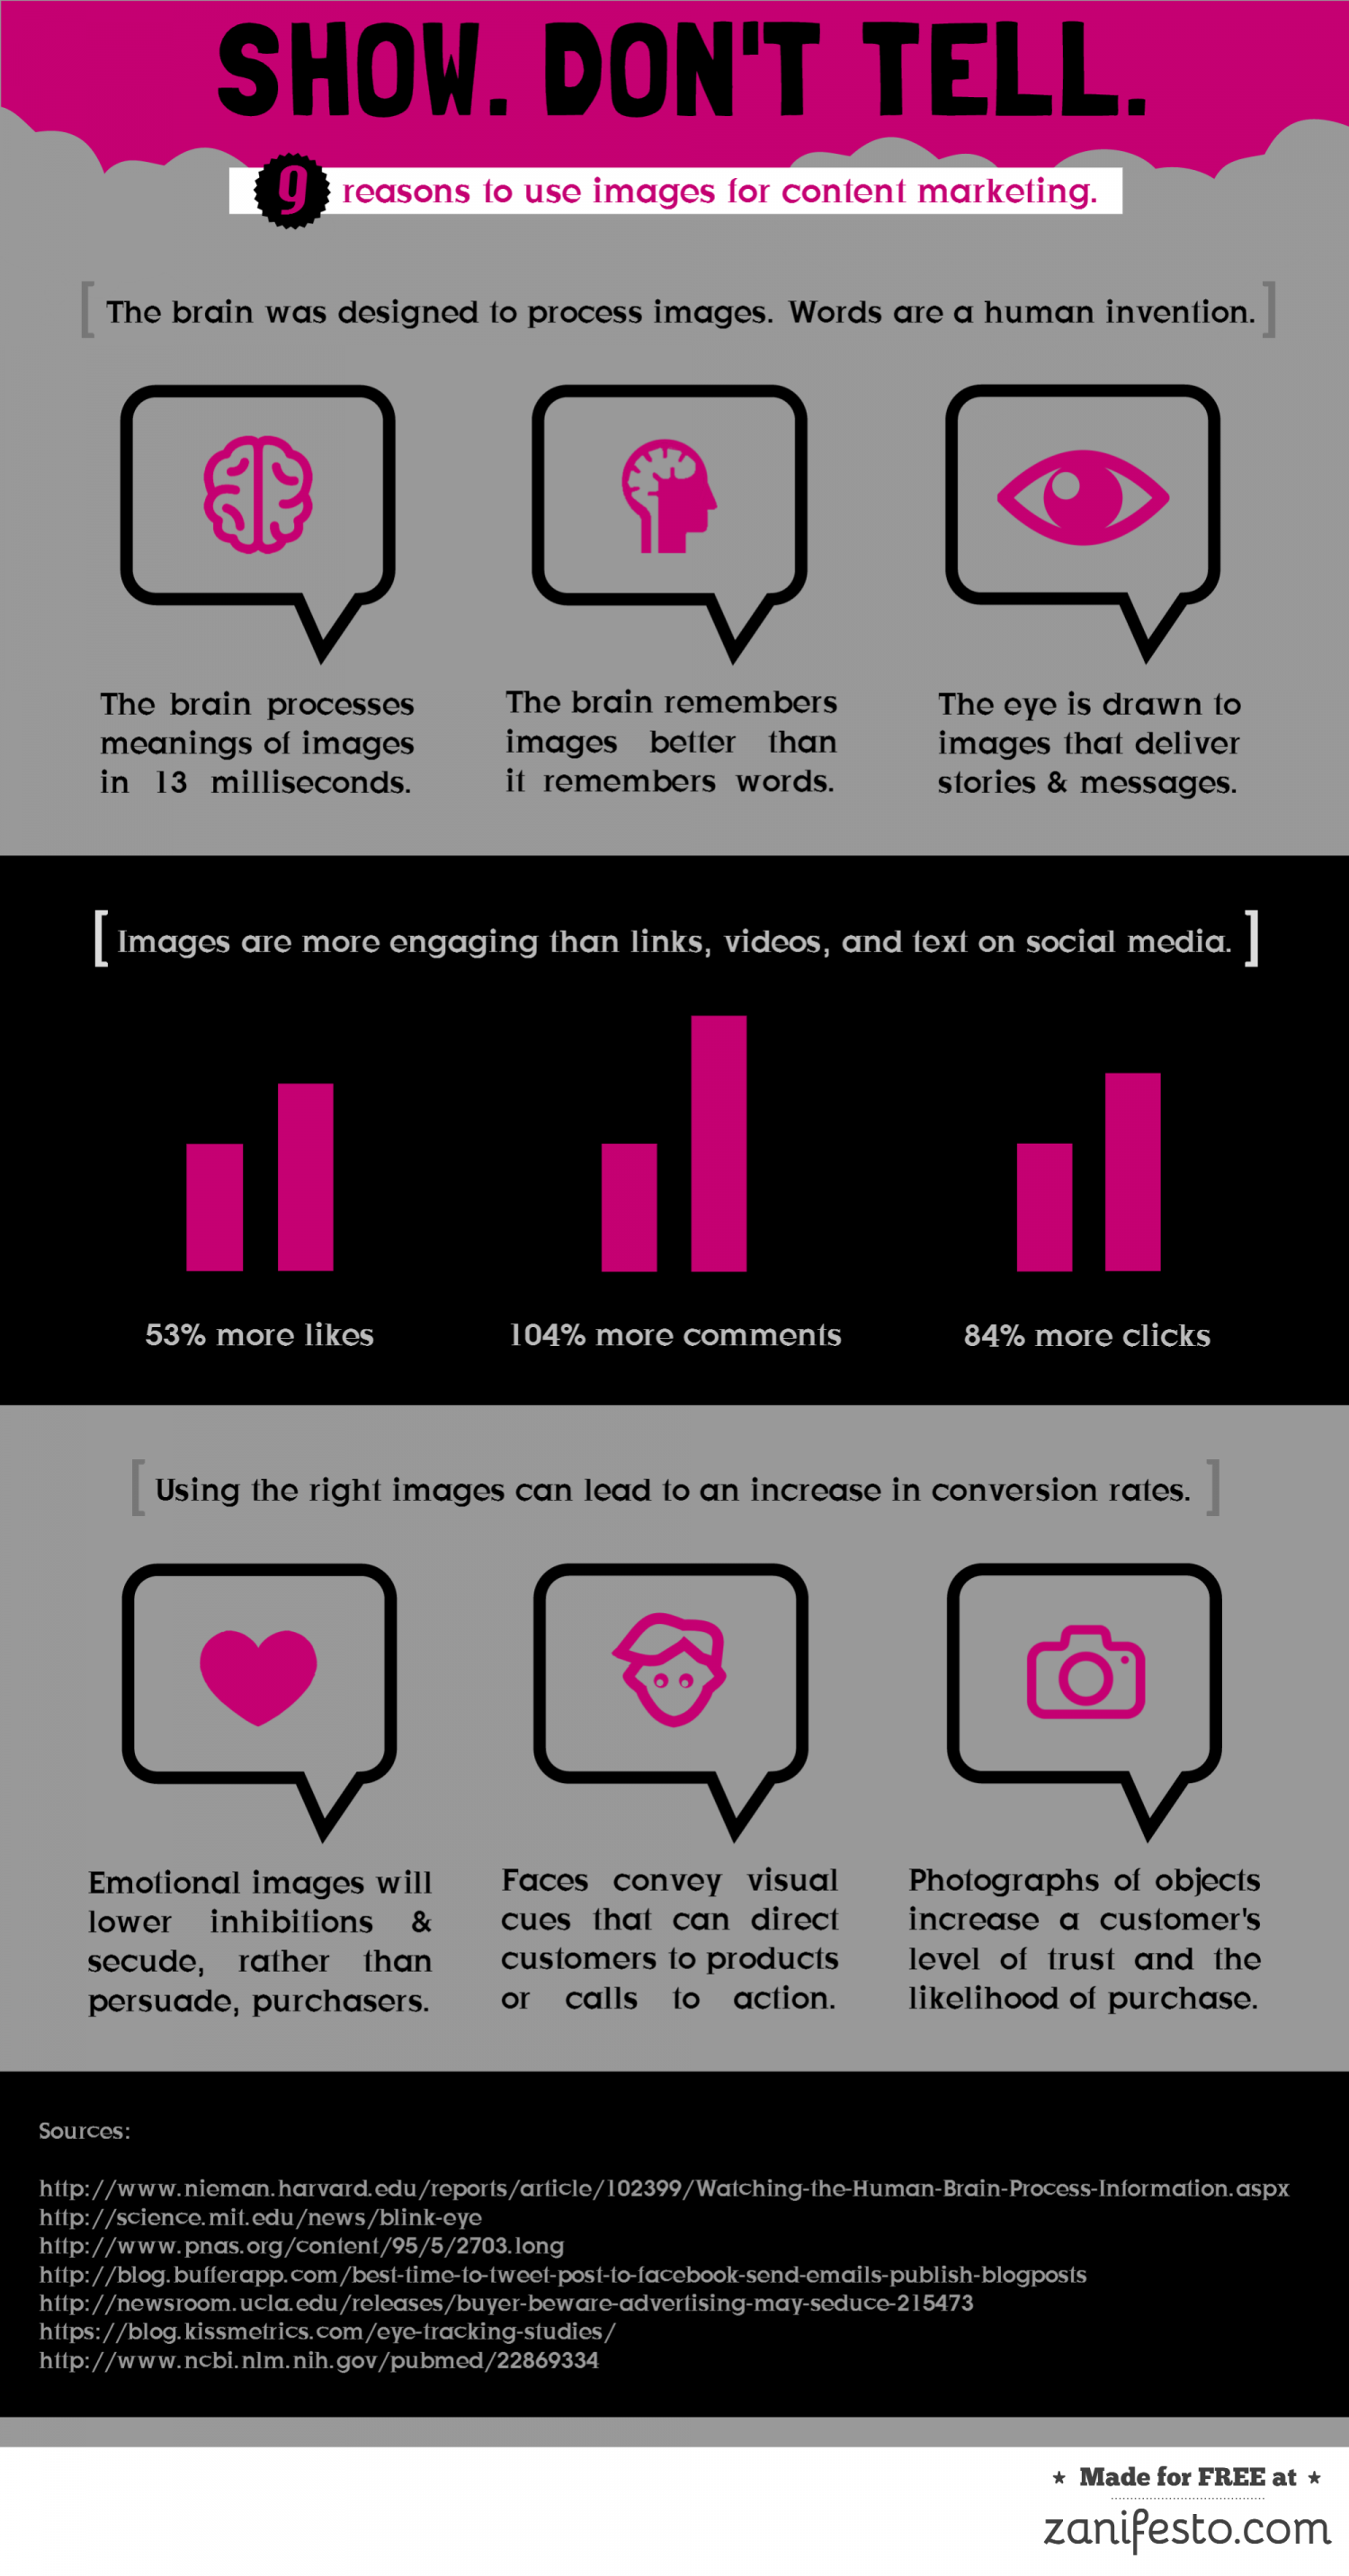 9 Reasons to Use Images for Your Content Marketing Infographic